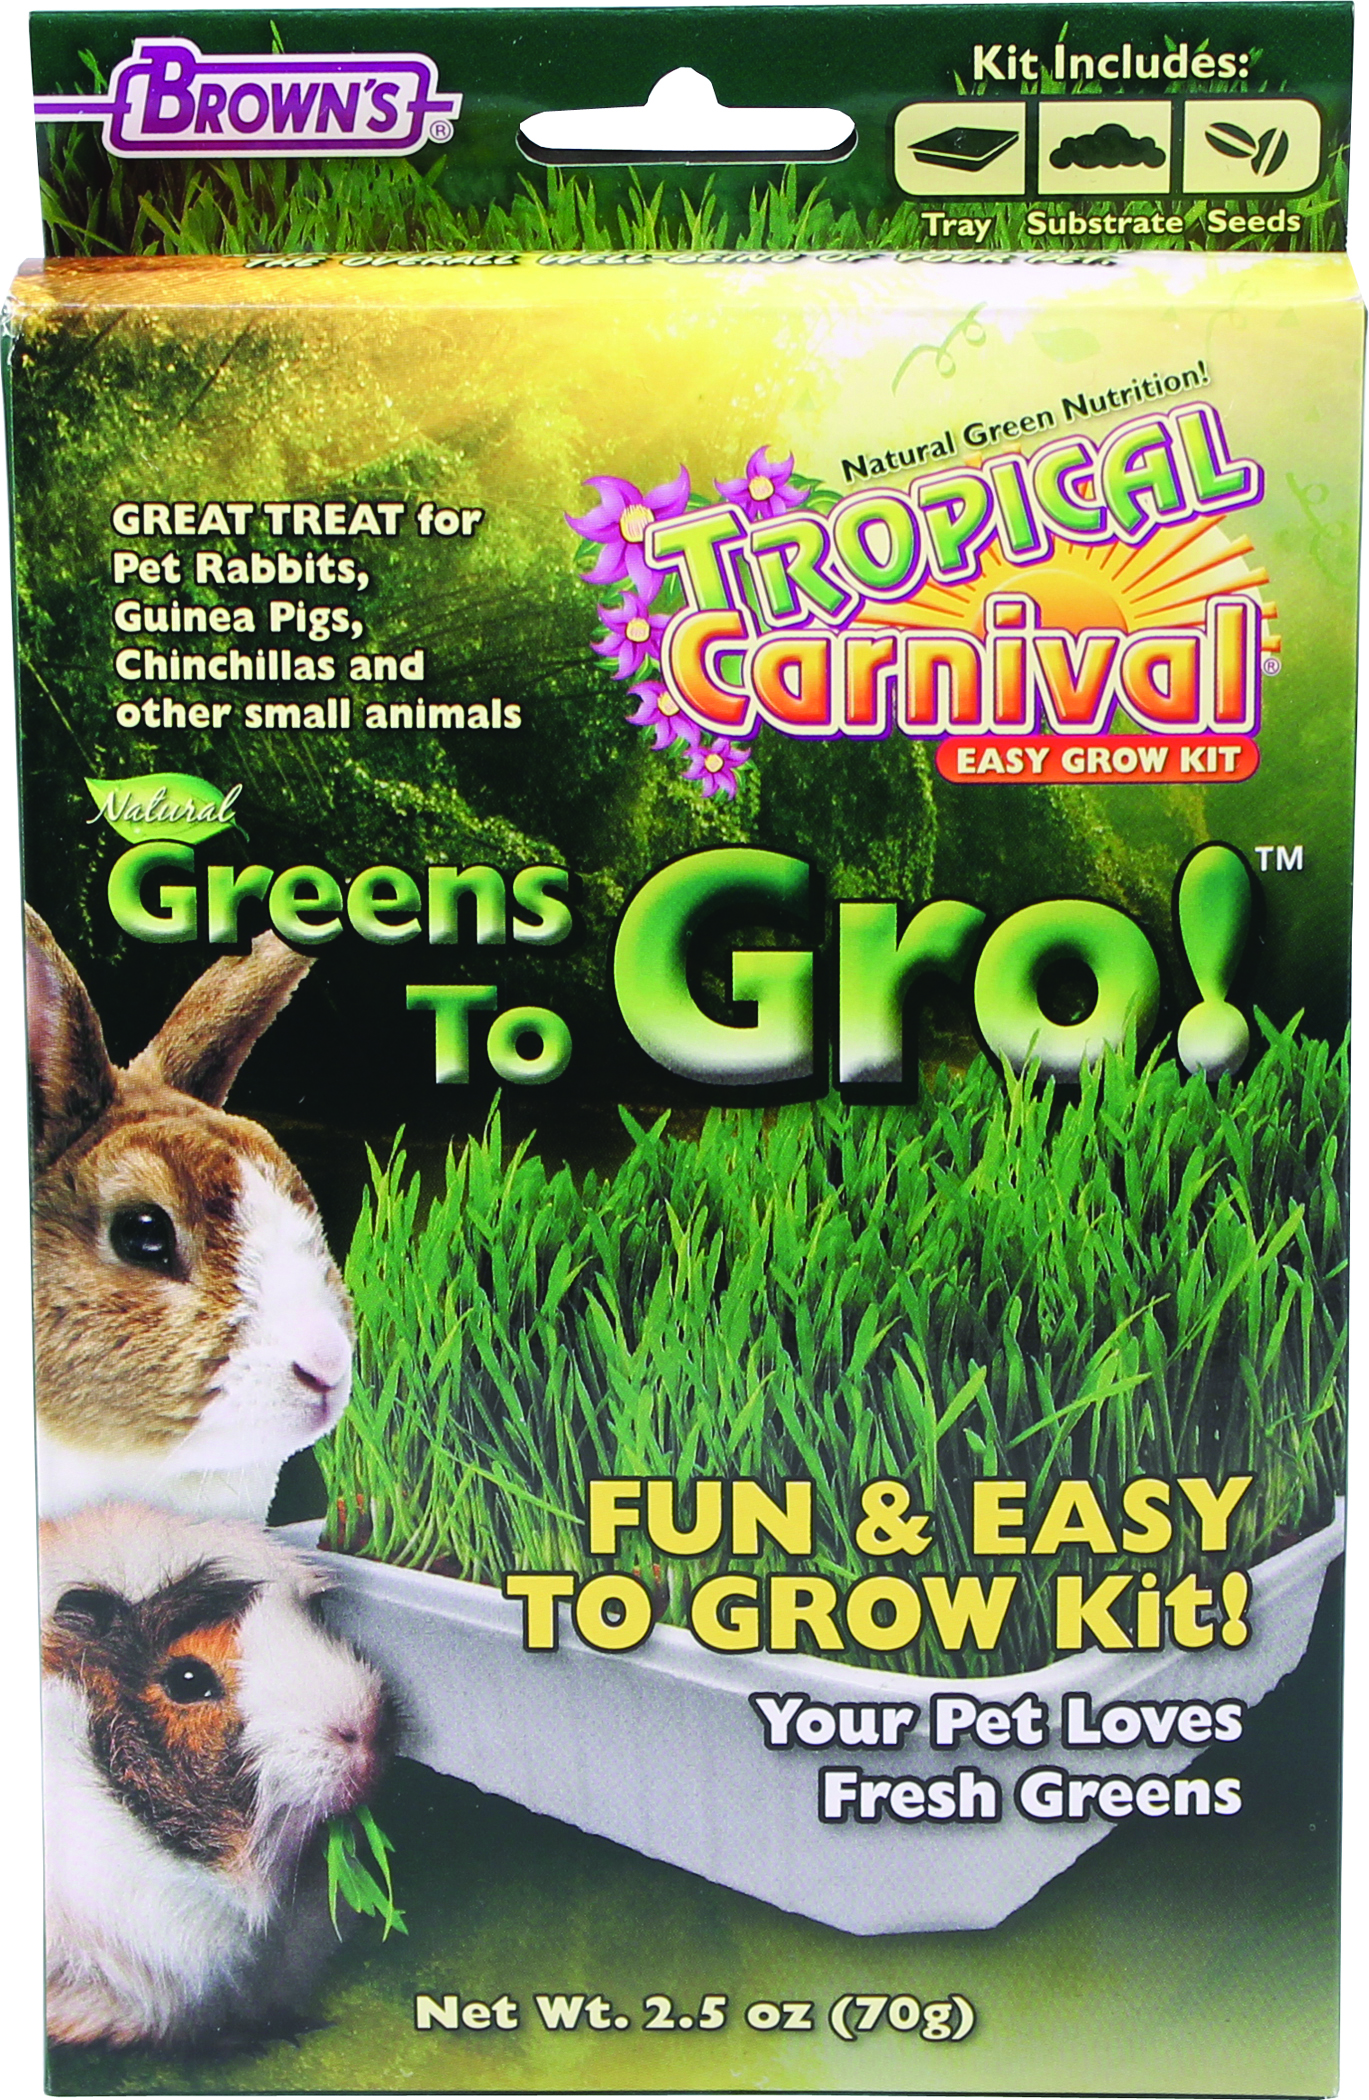 Brown's Tropical Carnival Greens To Gro!